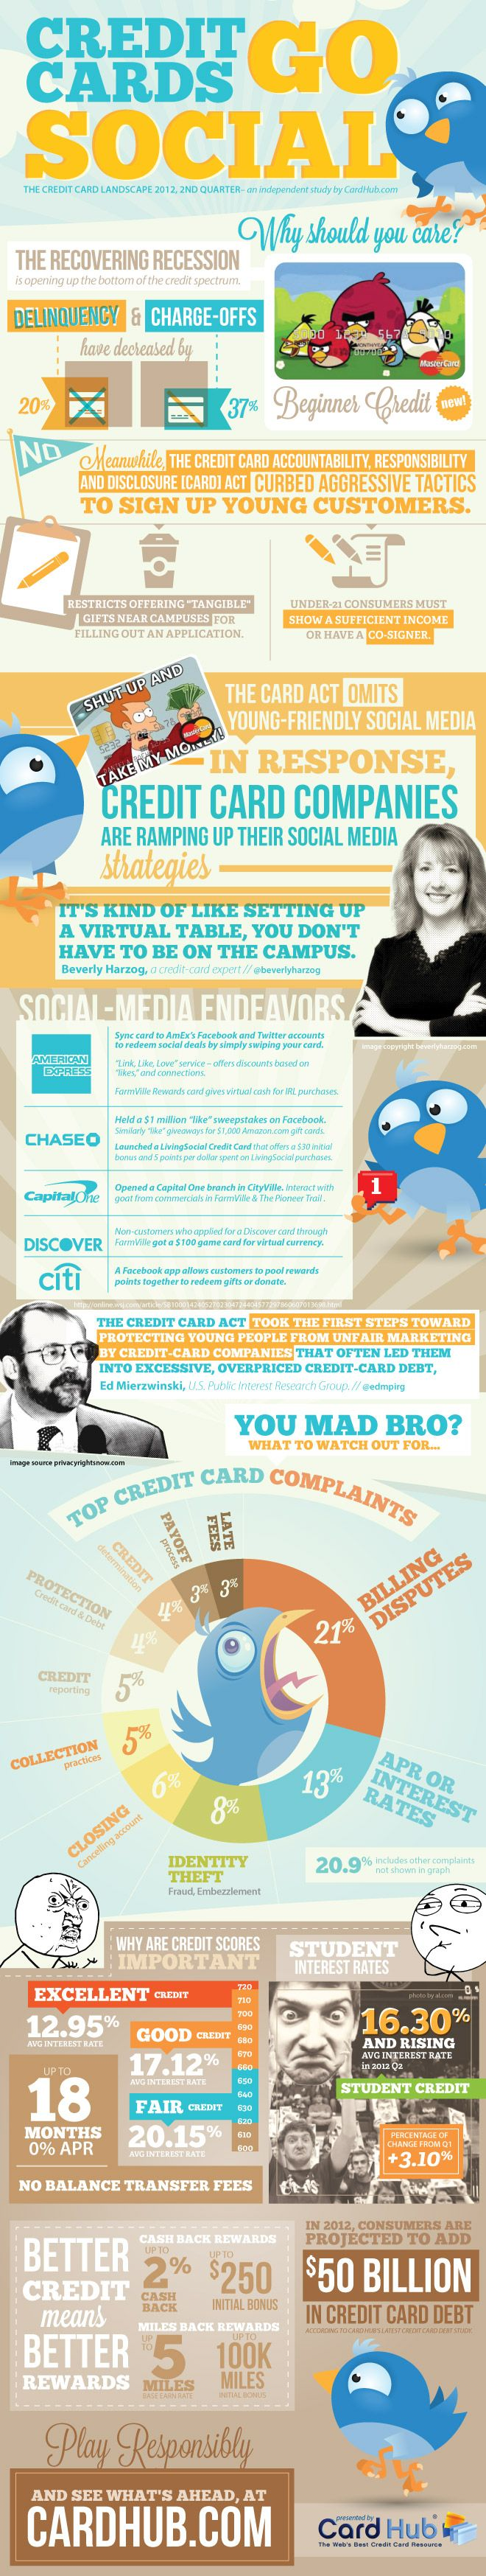 How Credit Card Companies Lure Customers on Social Media #INFOGRAPHIC